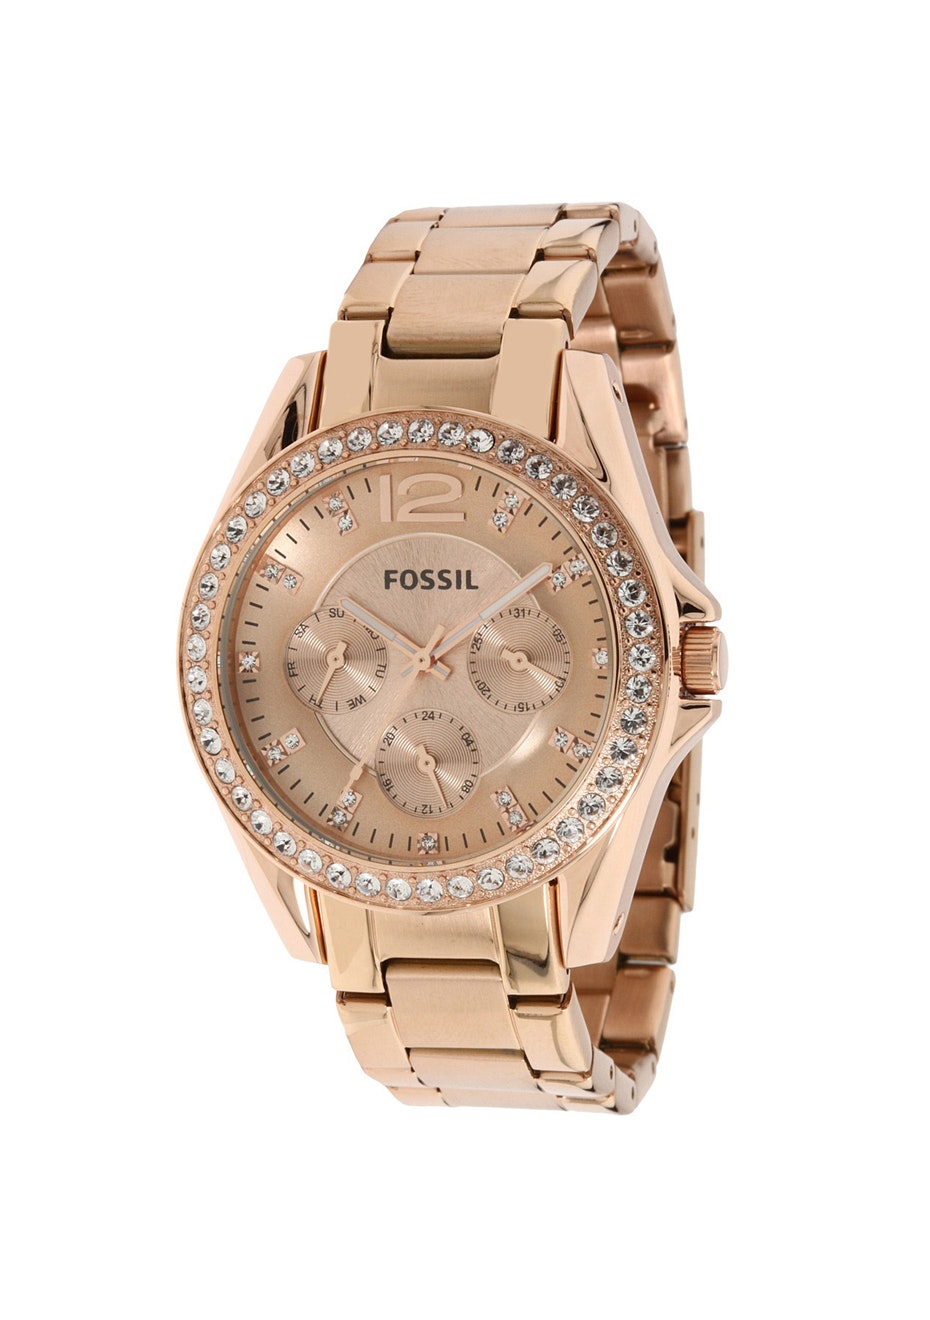 Fossil Women's Classic - Rose Gold/Rose Gold